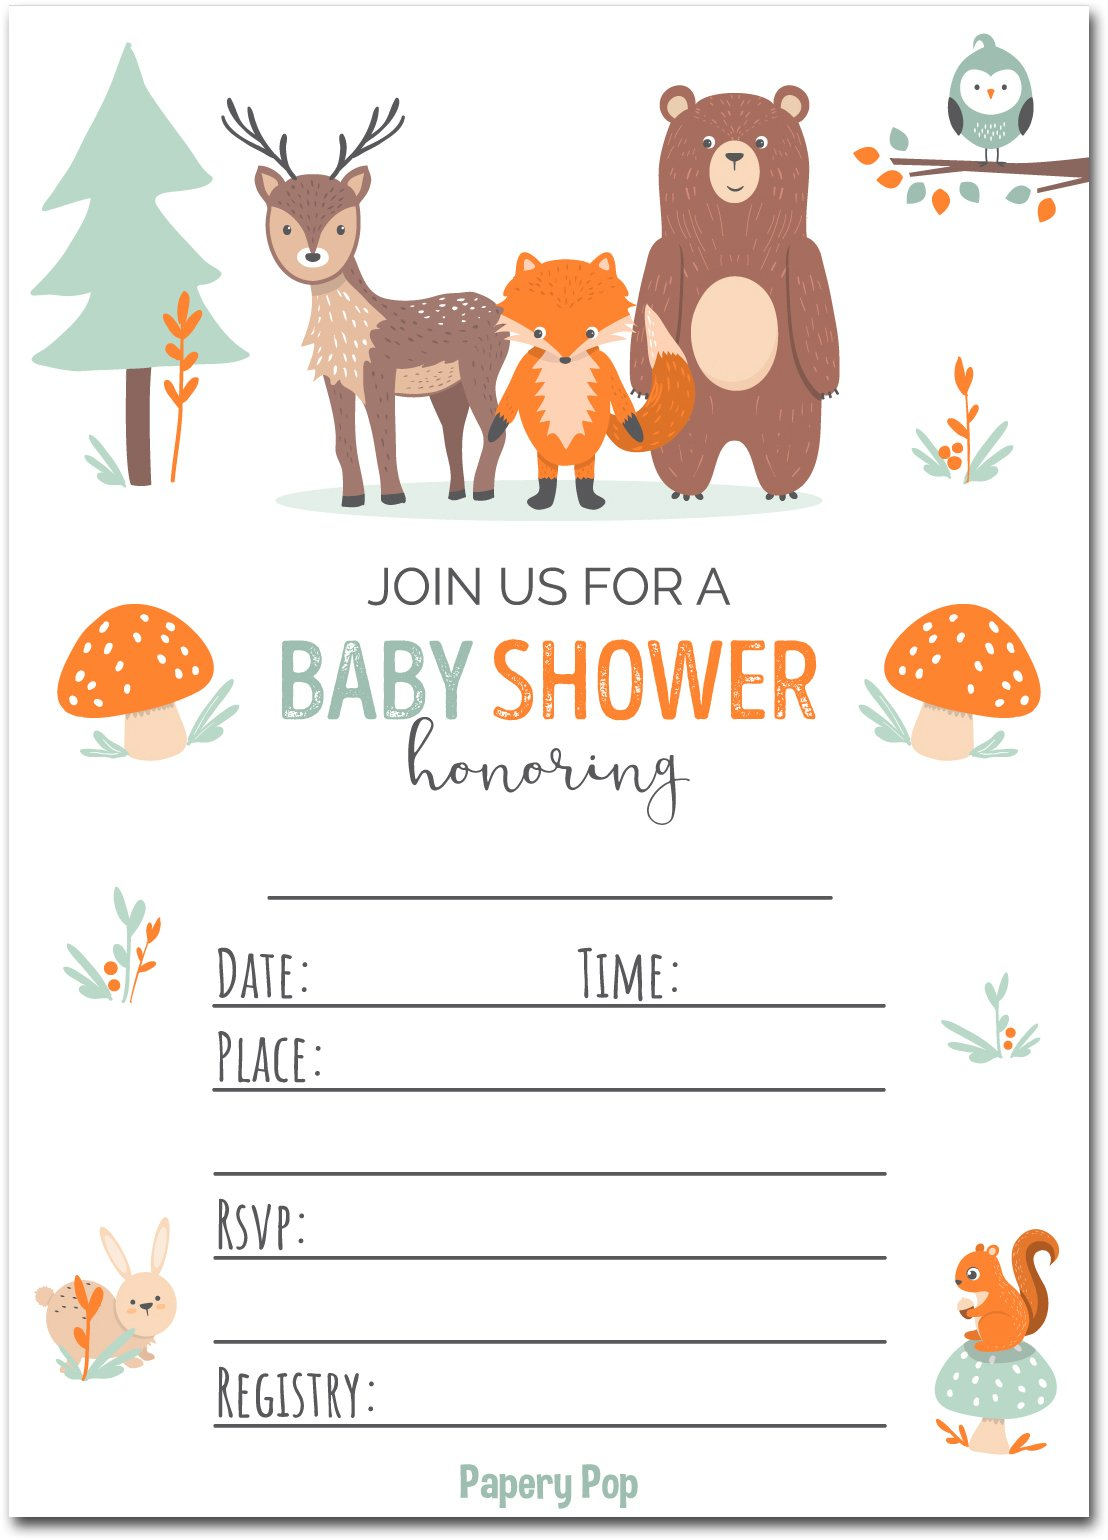 Papery Pop 30 Baby Shower Invitations Boy or Girl with Envelopes (30 Pack) - Gender Neutral - Fits Perfectly with Woodland Animals Baby Shower Decorations and Supplies